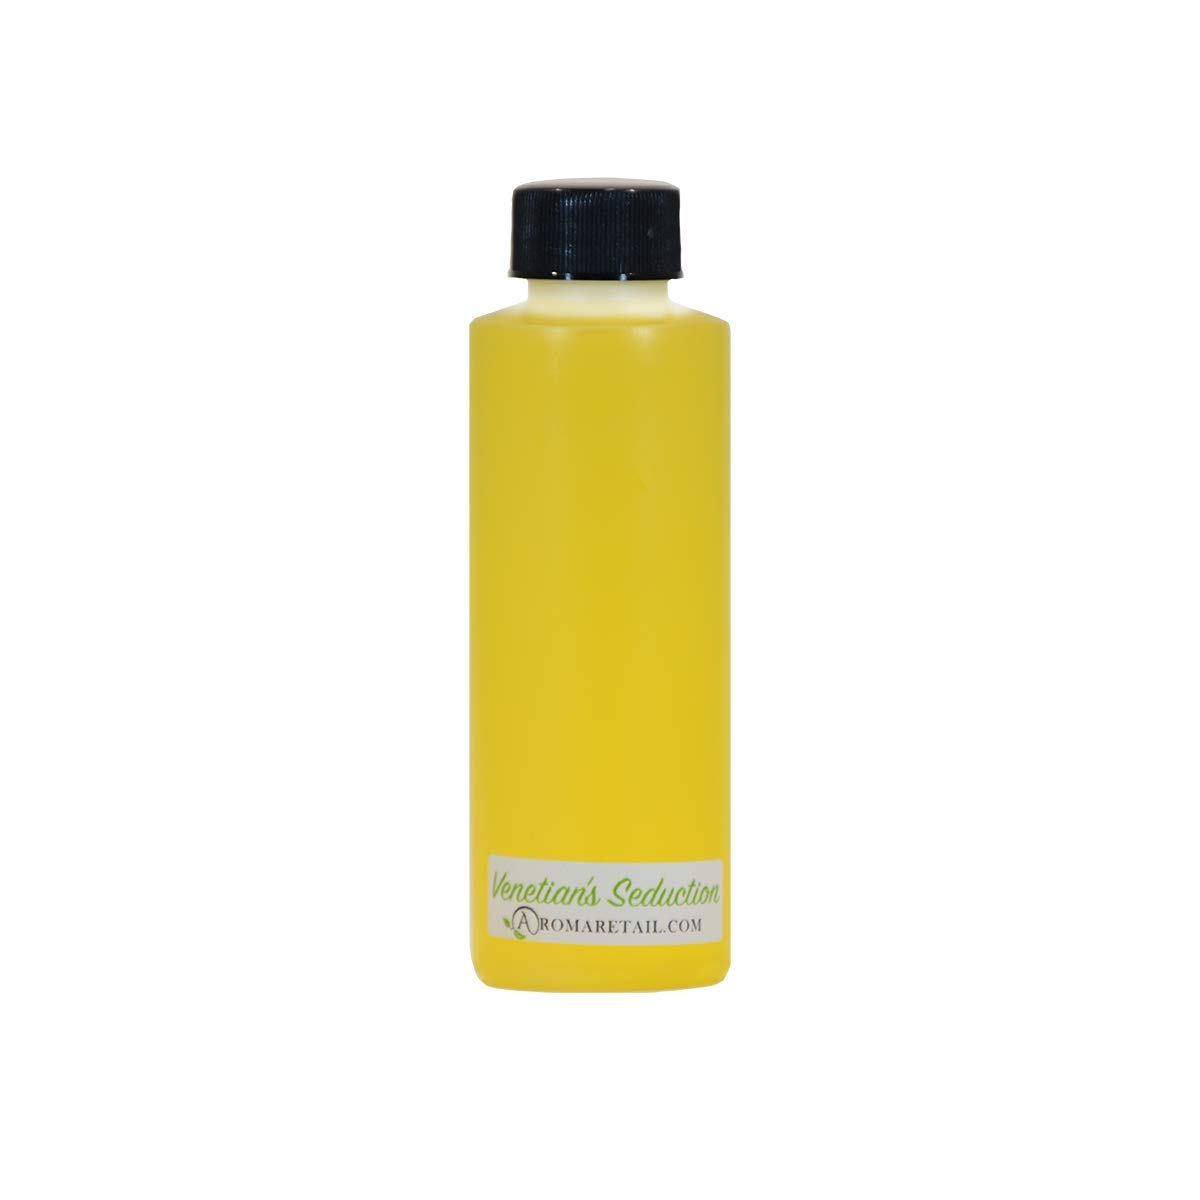 Seduction Fragrance Oil Experienced at The Venetian Hotel Las Vegas Before 2015, 4 oz Refill for Aroma Diffusion Machine